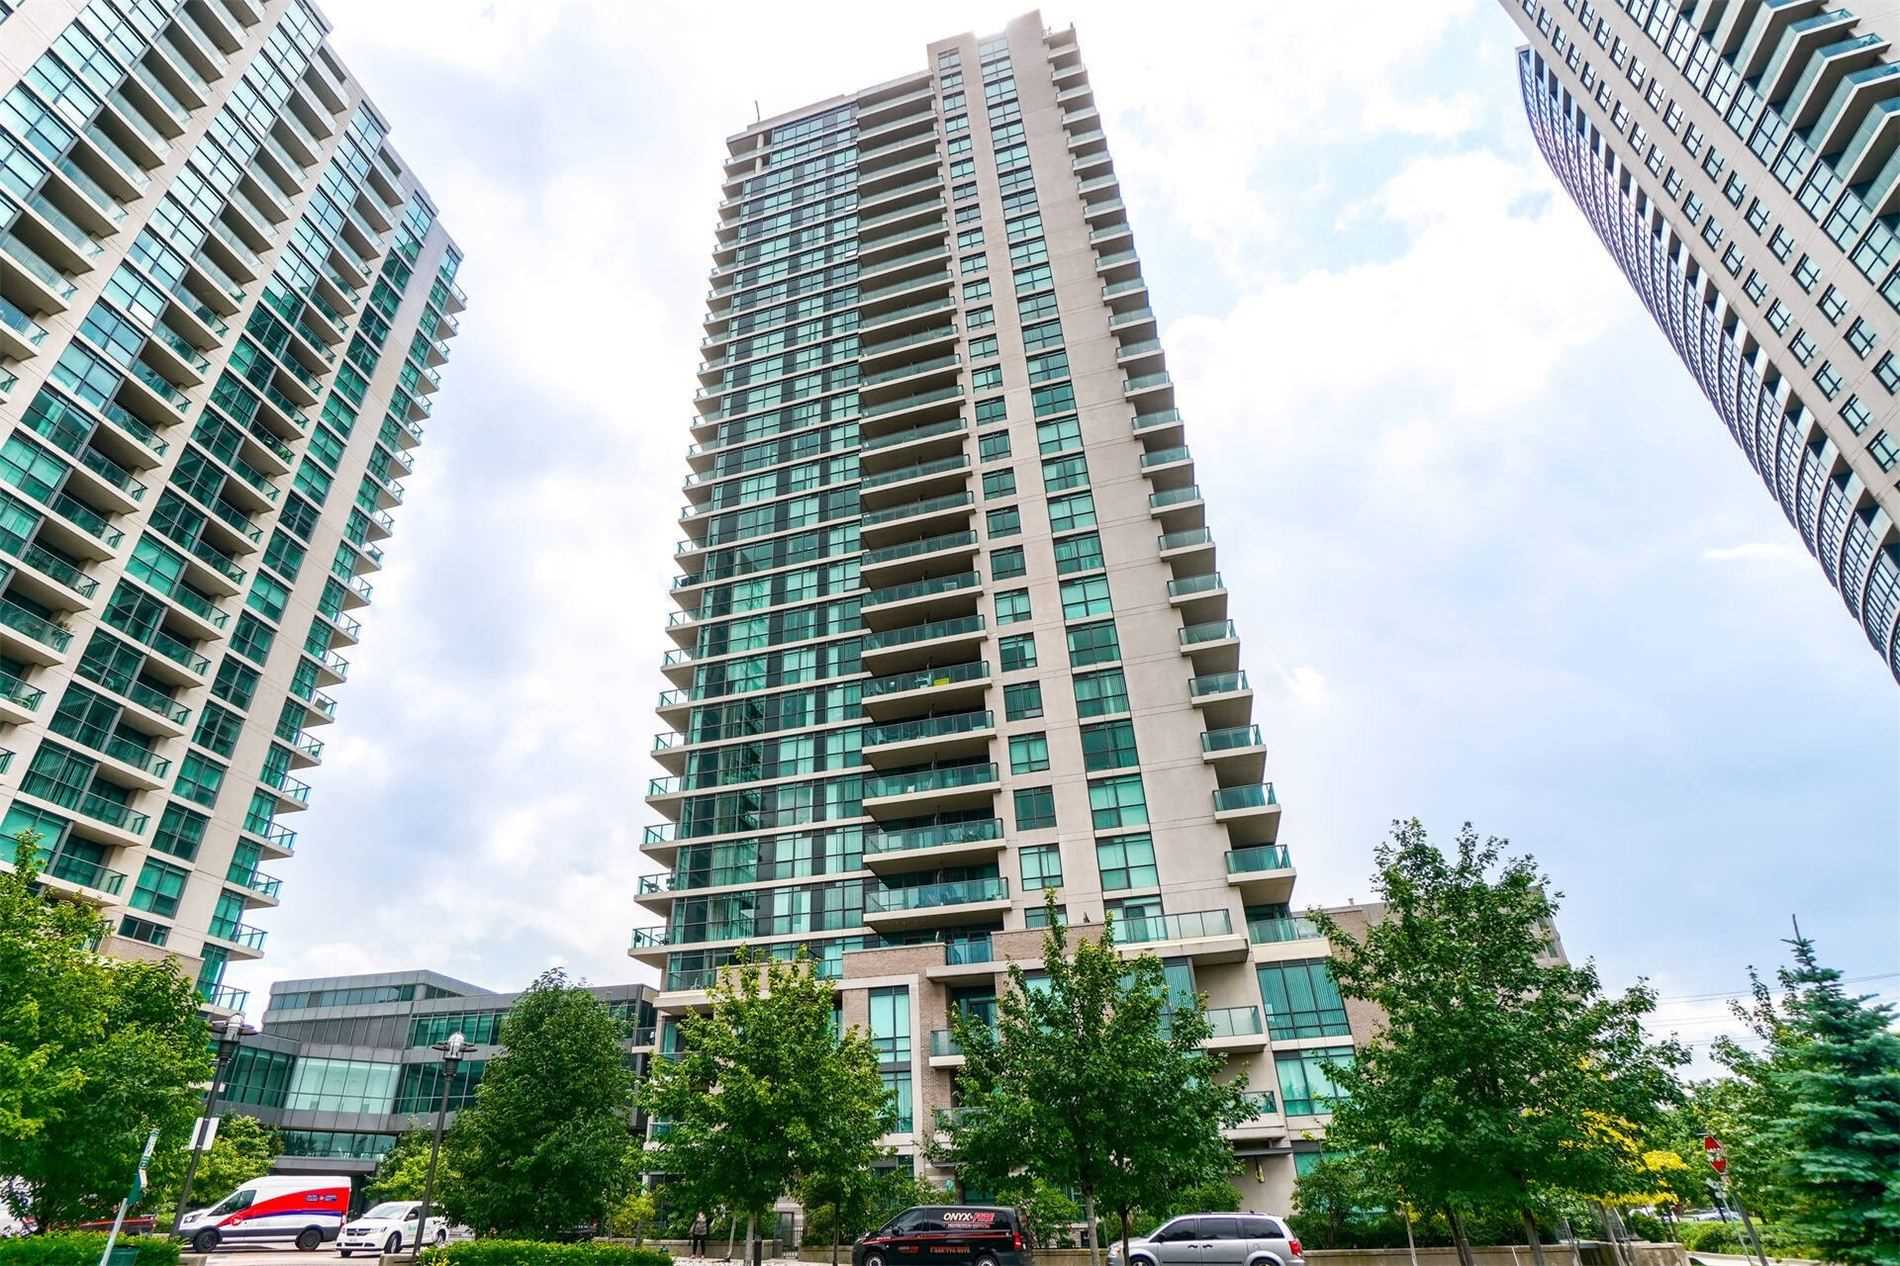 907 - 215 Sherway Gardens Rd - Islington-City Centre West Condo Apt for sale, 2 Bedrooms (W5325013) - #1